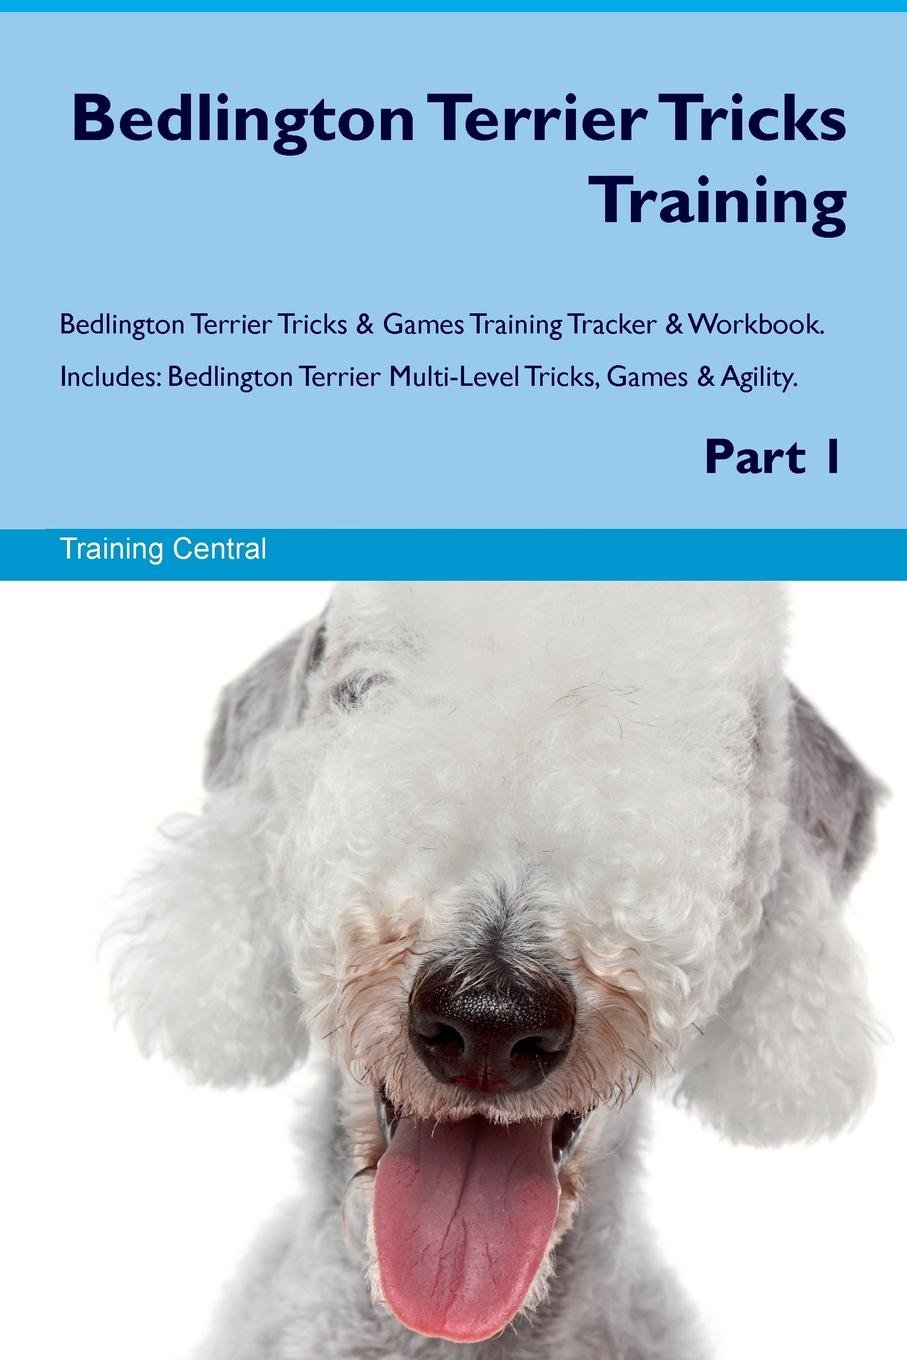 Bedlington Terrier Tricks Training Bedlington Terrier Tricks & Games Training Tracker & Workbook. Includes: Bedlington…